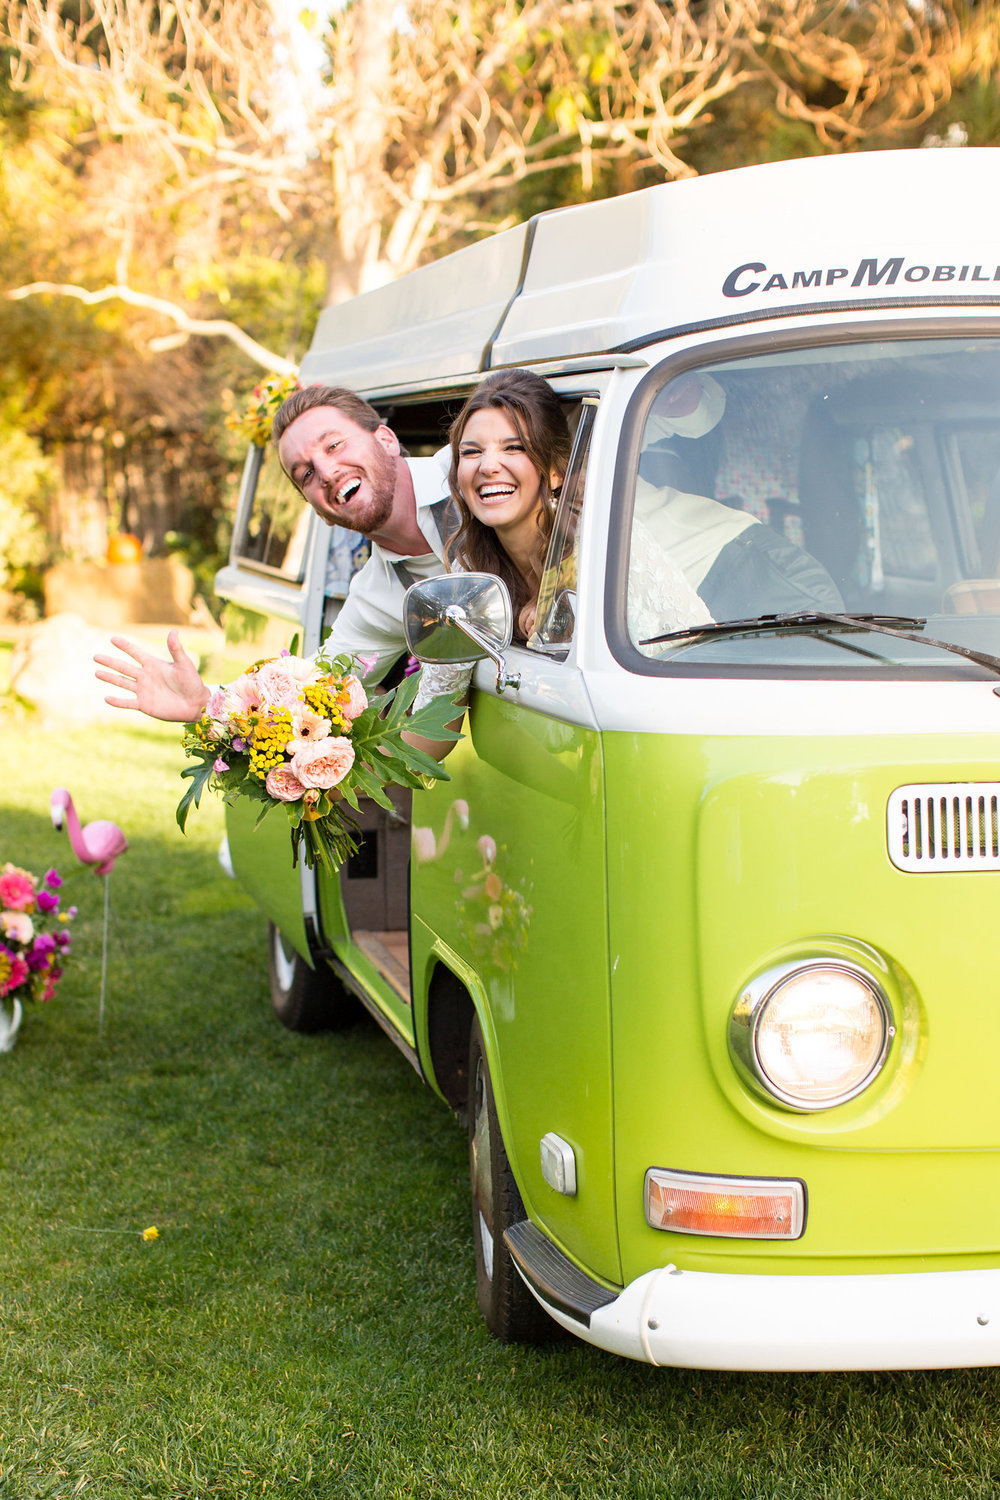 bride and groom both inside green vw bus happily smiling kim baker beauty san jose california makeup artist wedding styled photoshoot at the holly farm in carmel